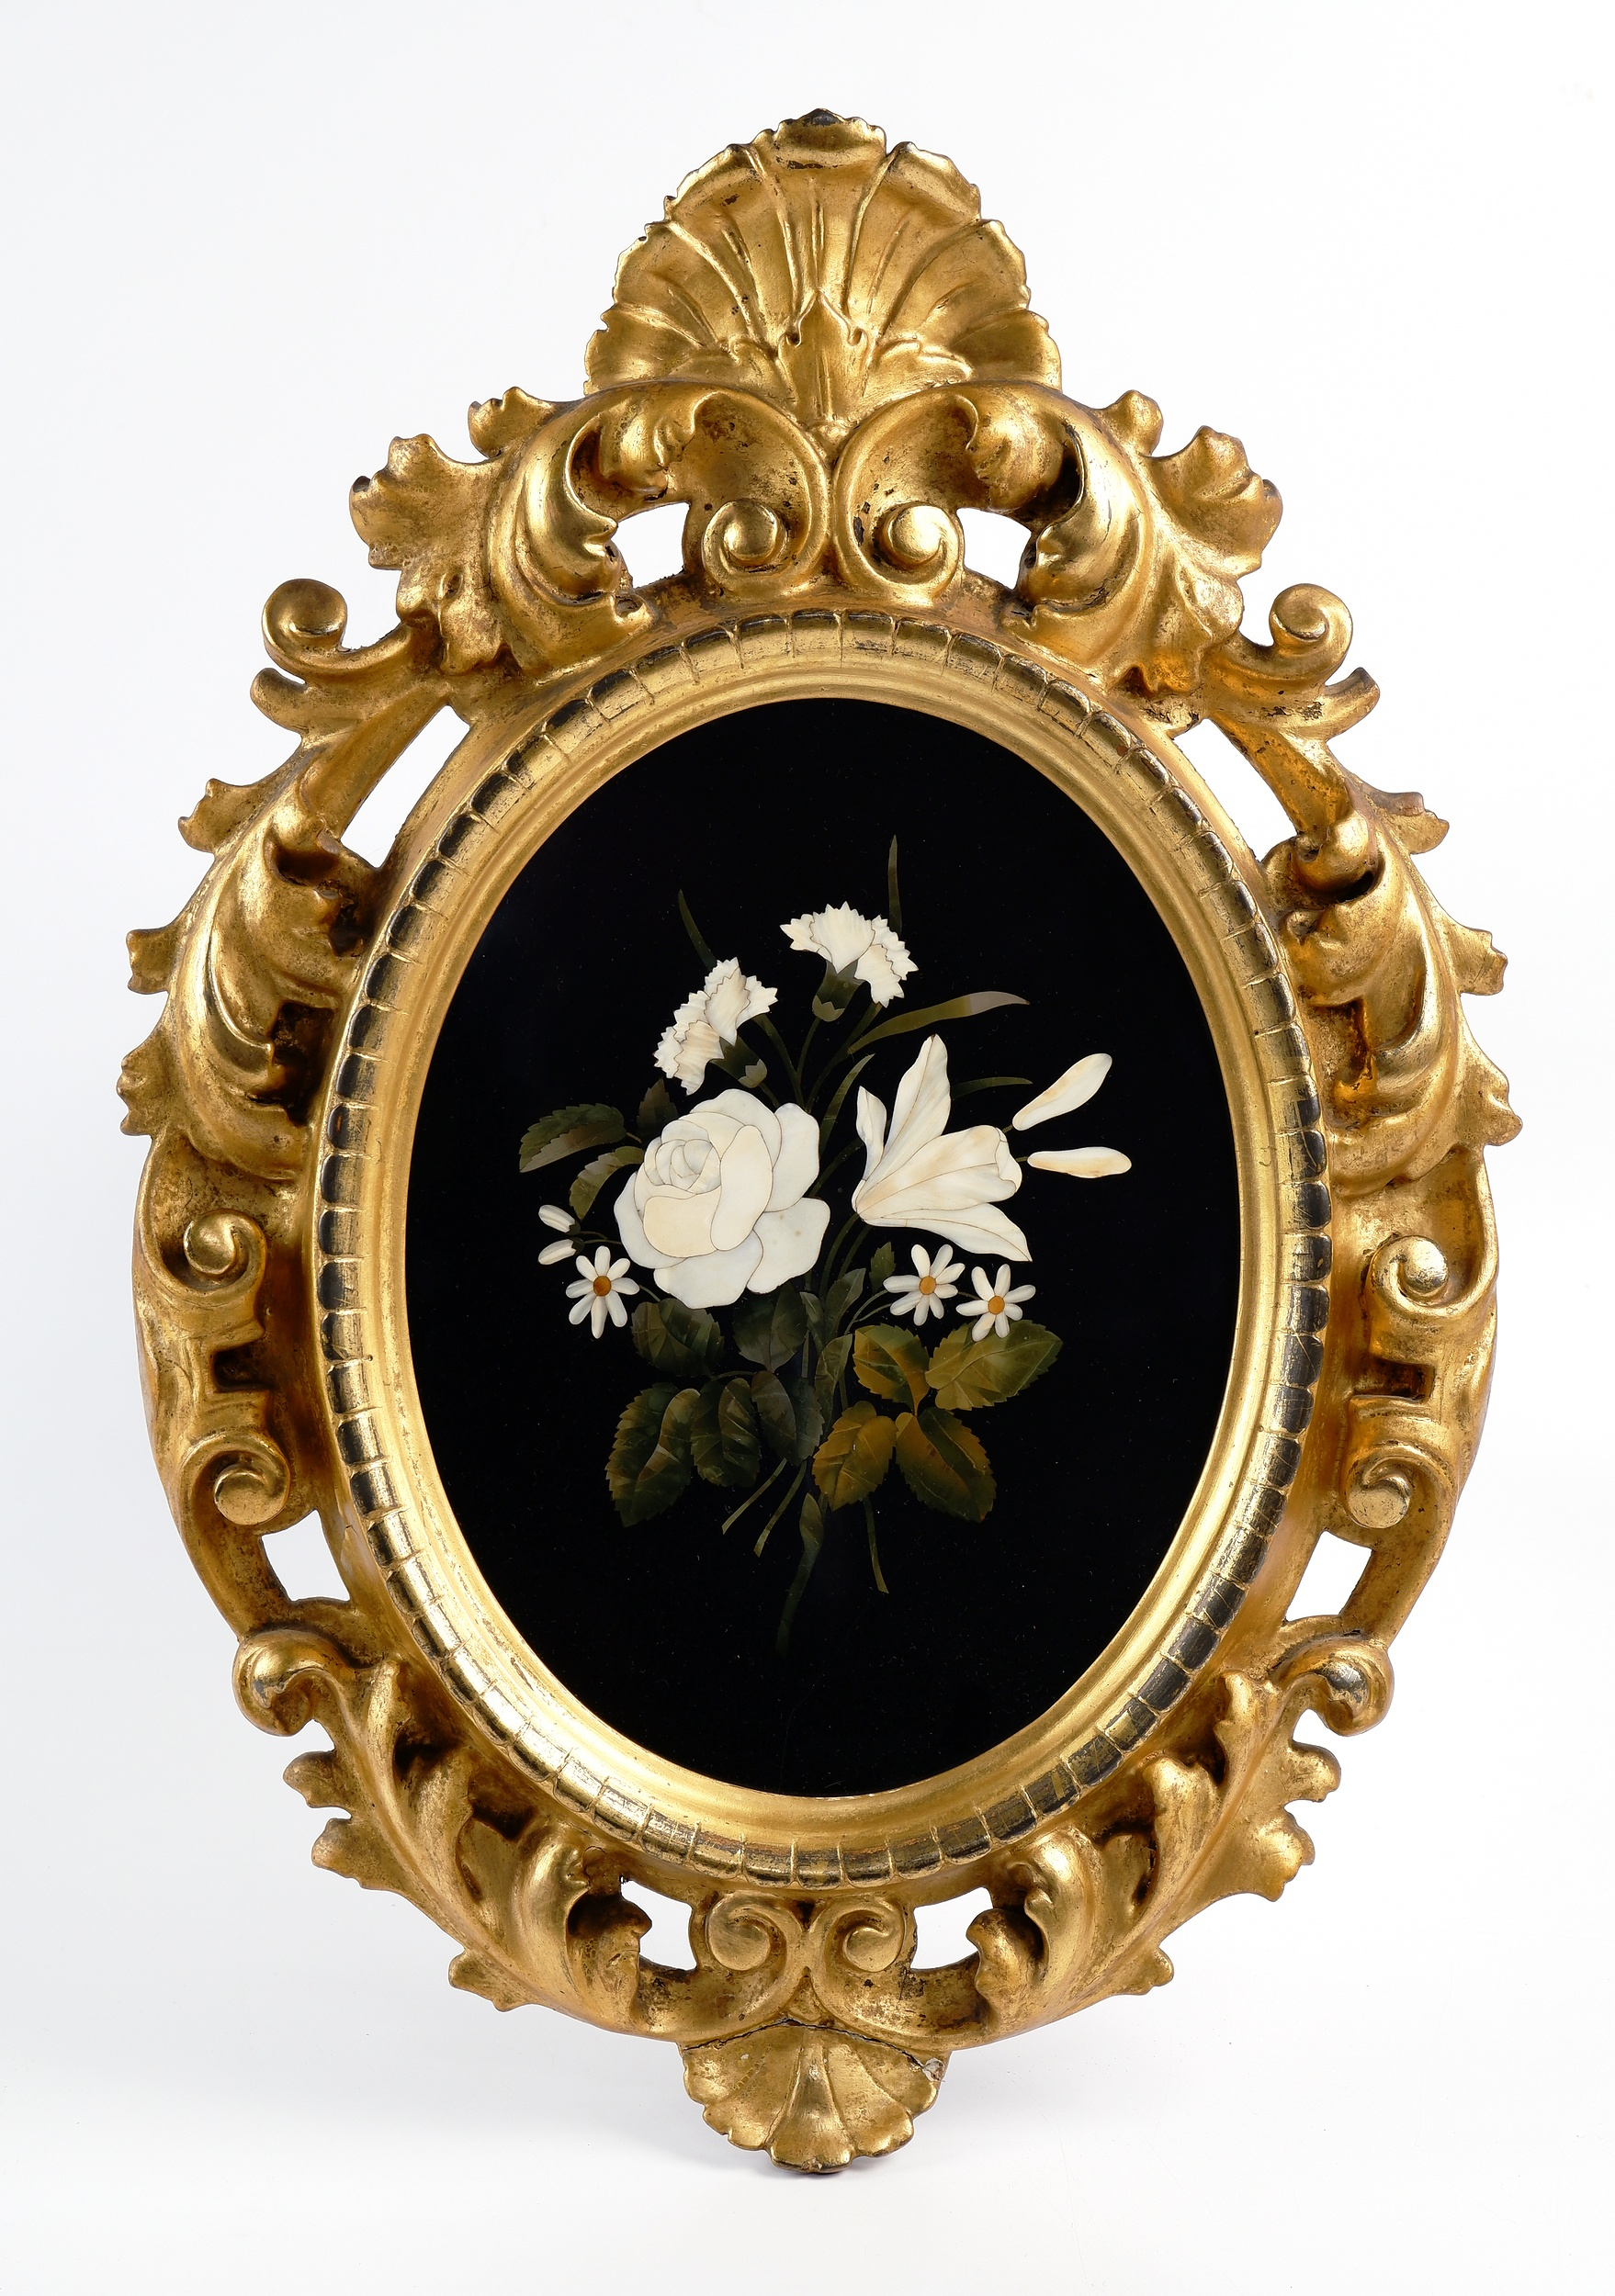 'Italian Pietra Dura Inlaid Marble Floral Plaque in Giltwood Frame'